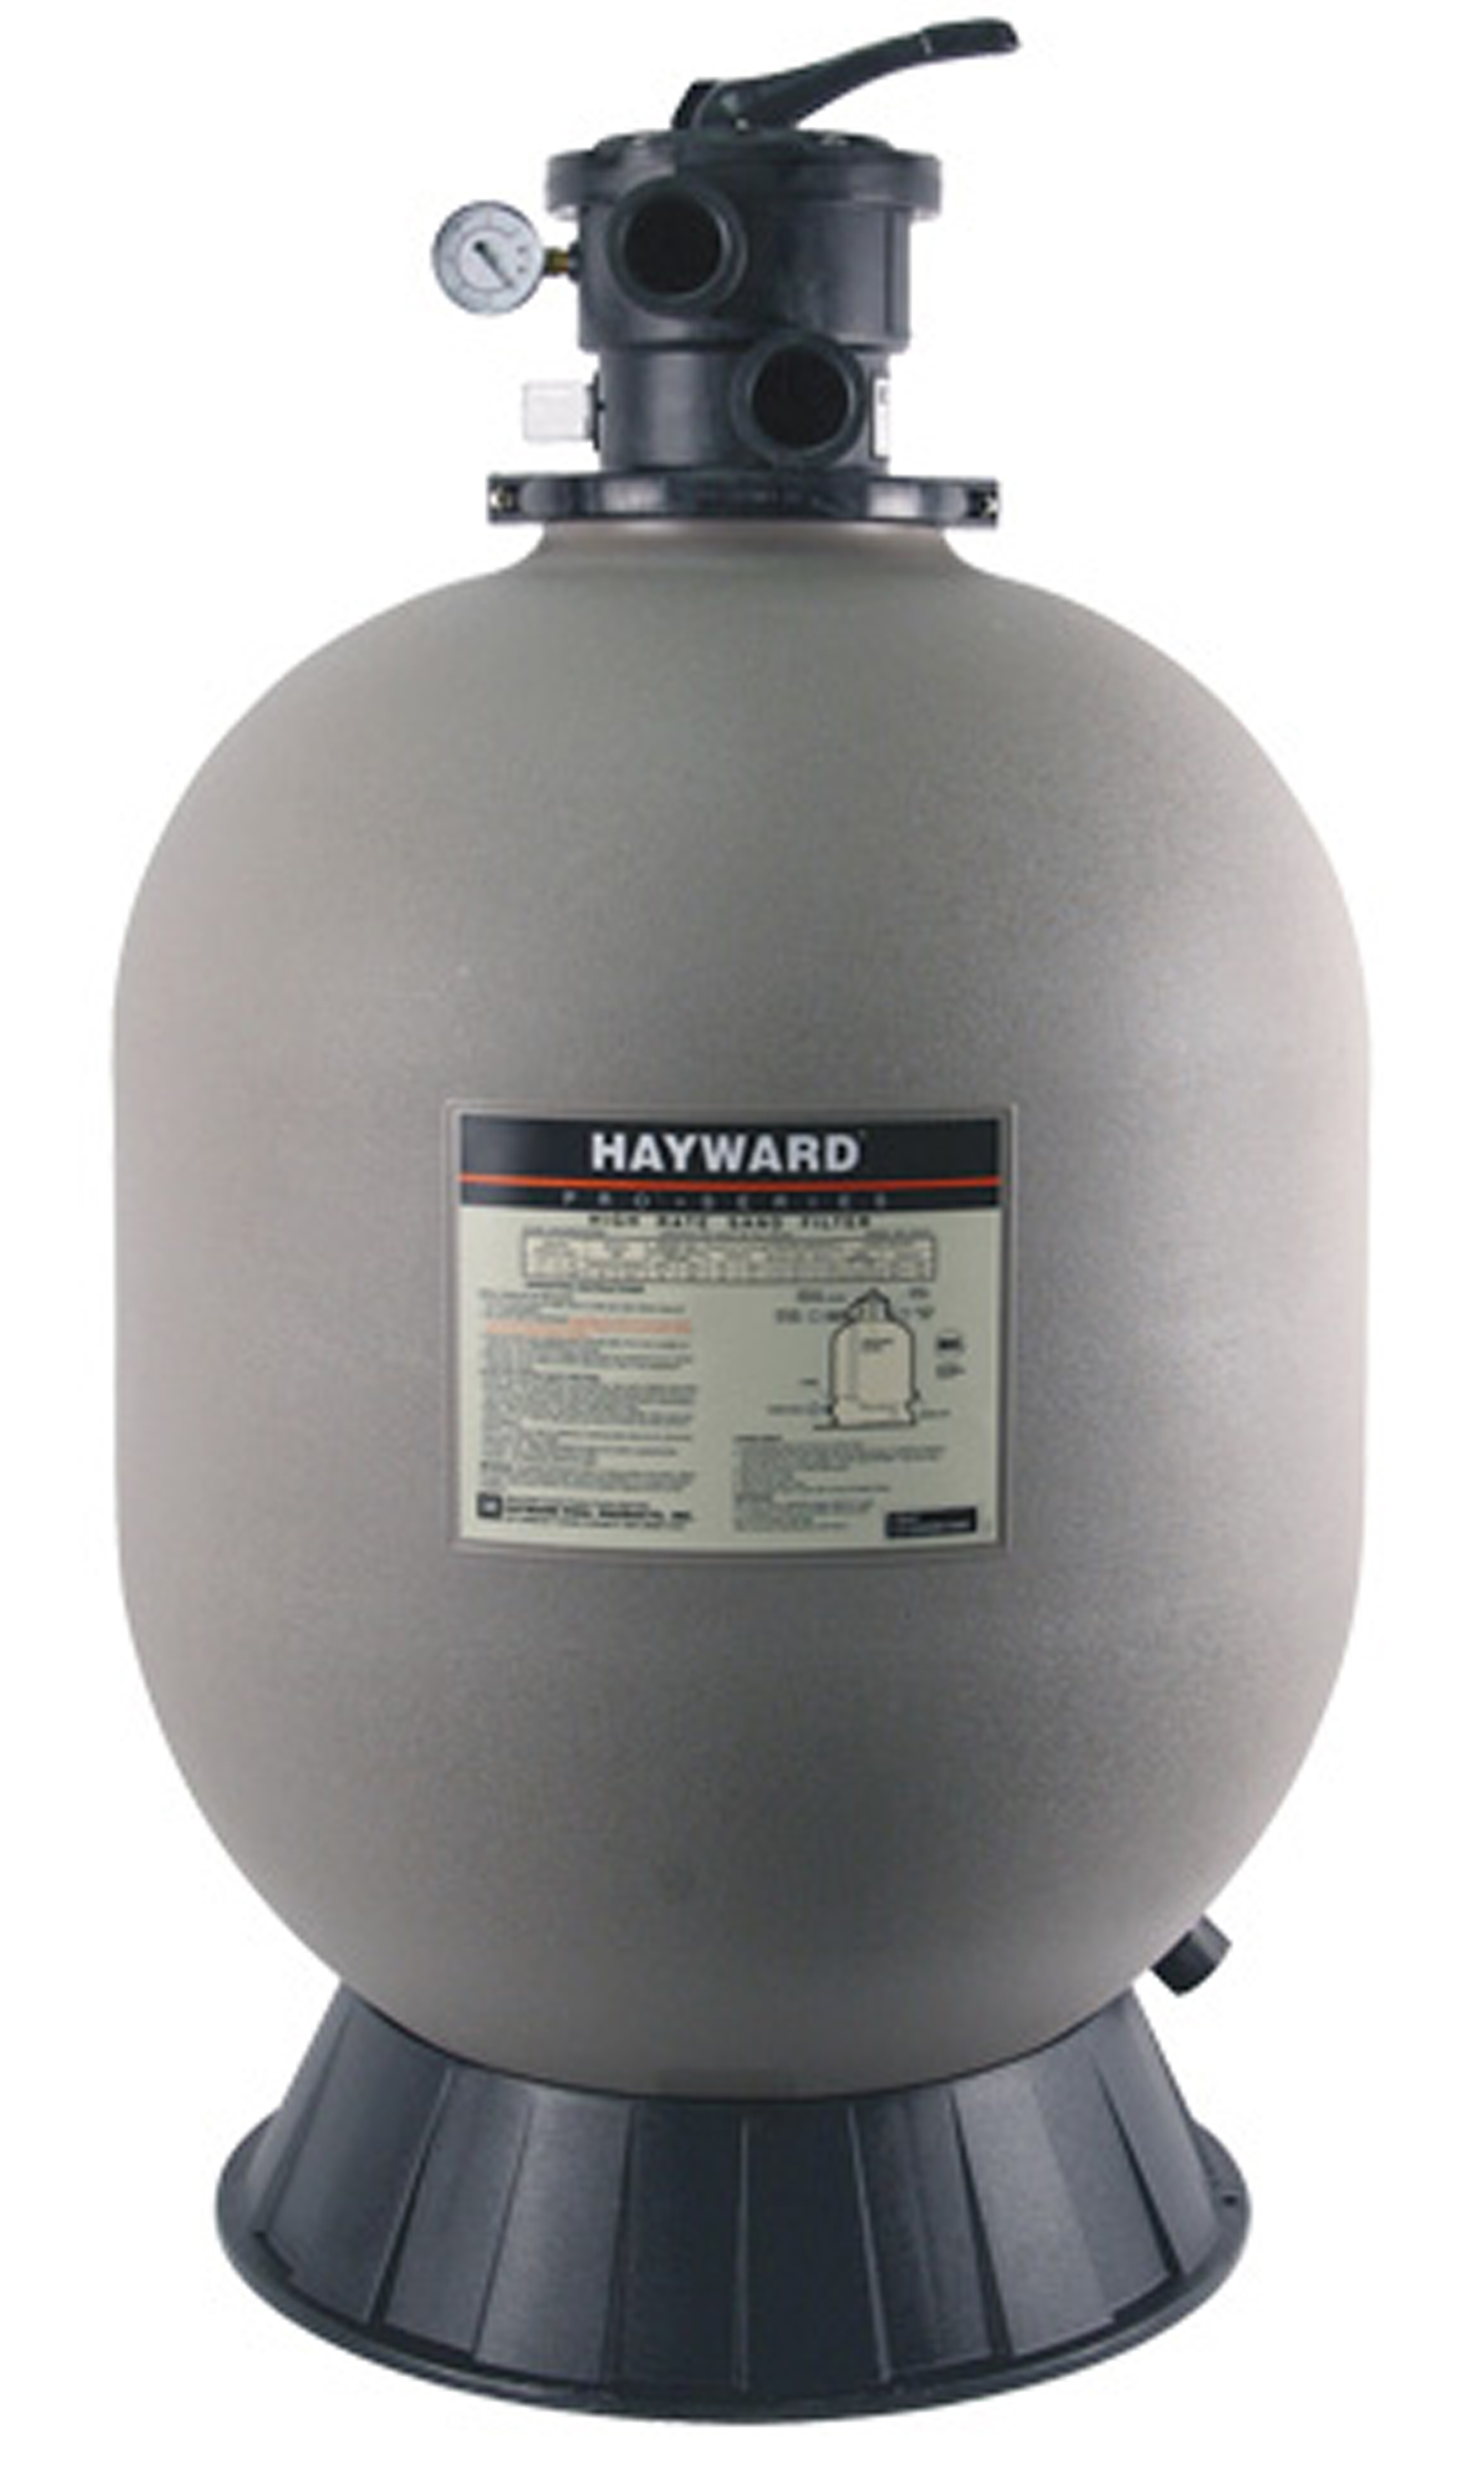 Hayward s180t pro series above ground swimming pool sand - Swimming pool filter manufacturers ...